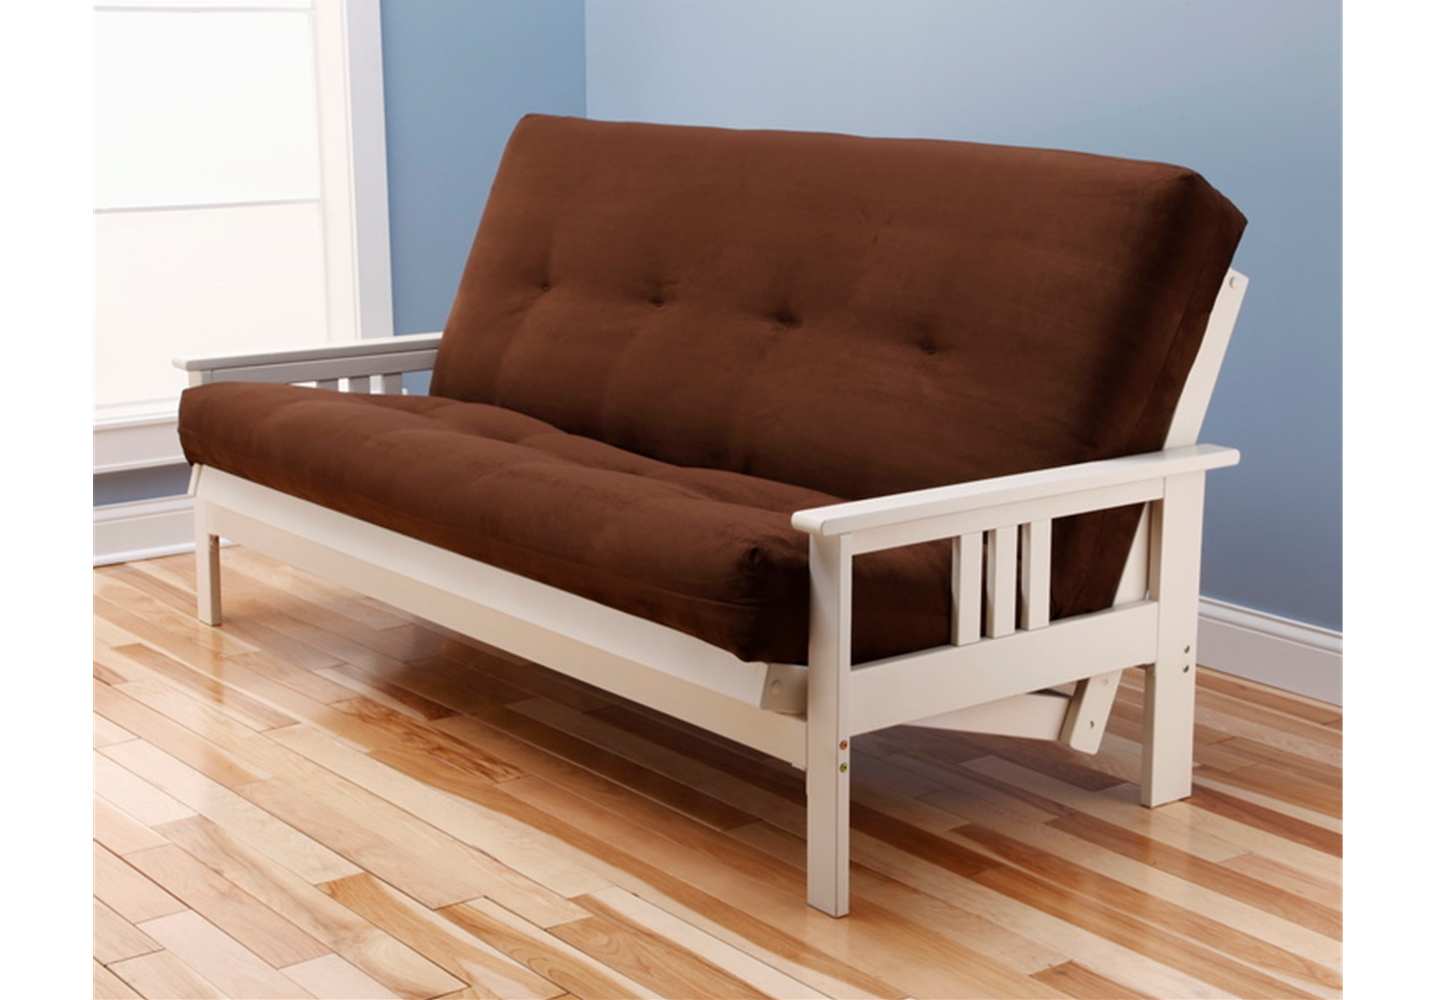 Mission Arm White Full Futon Frame With Mattress In Suede Chocolate